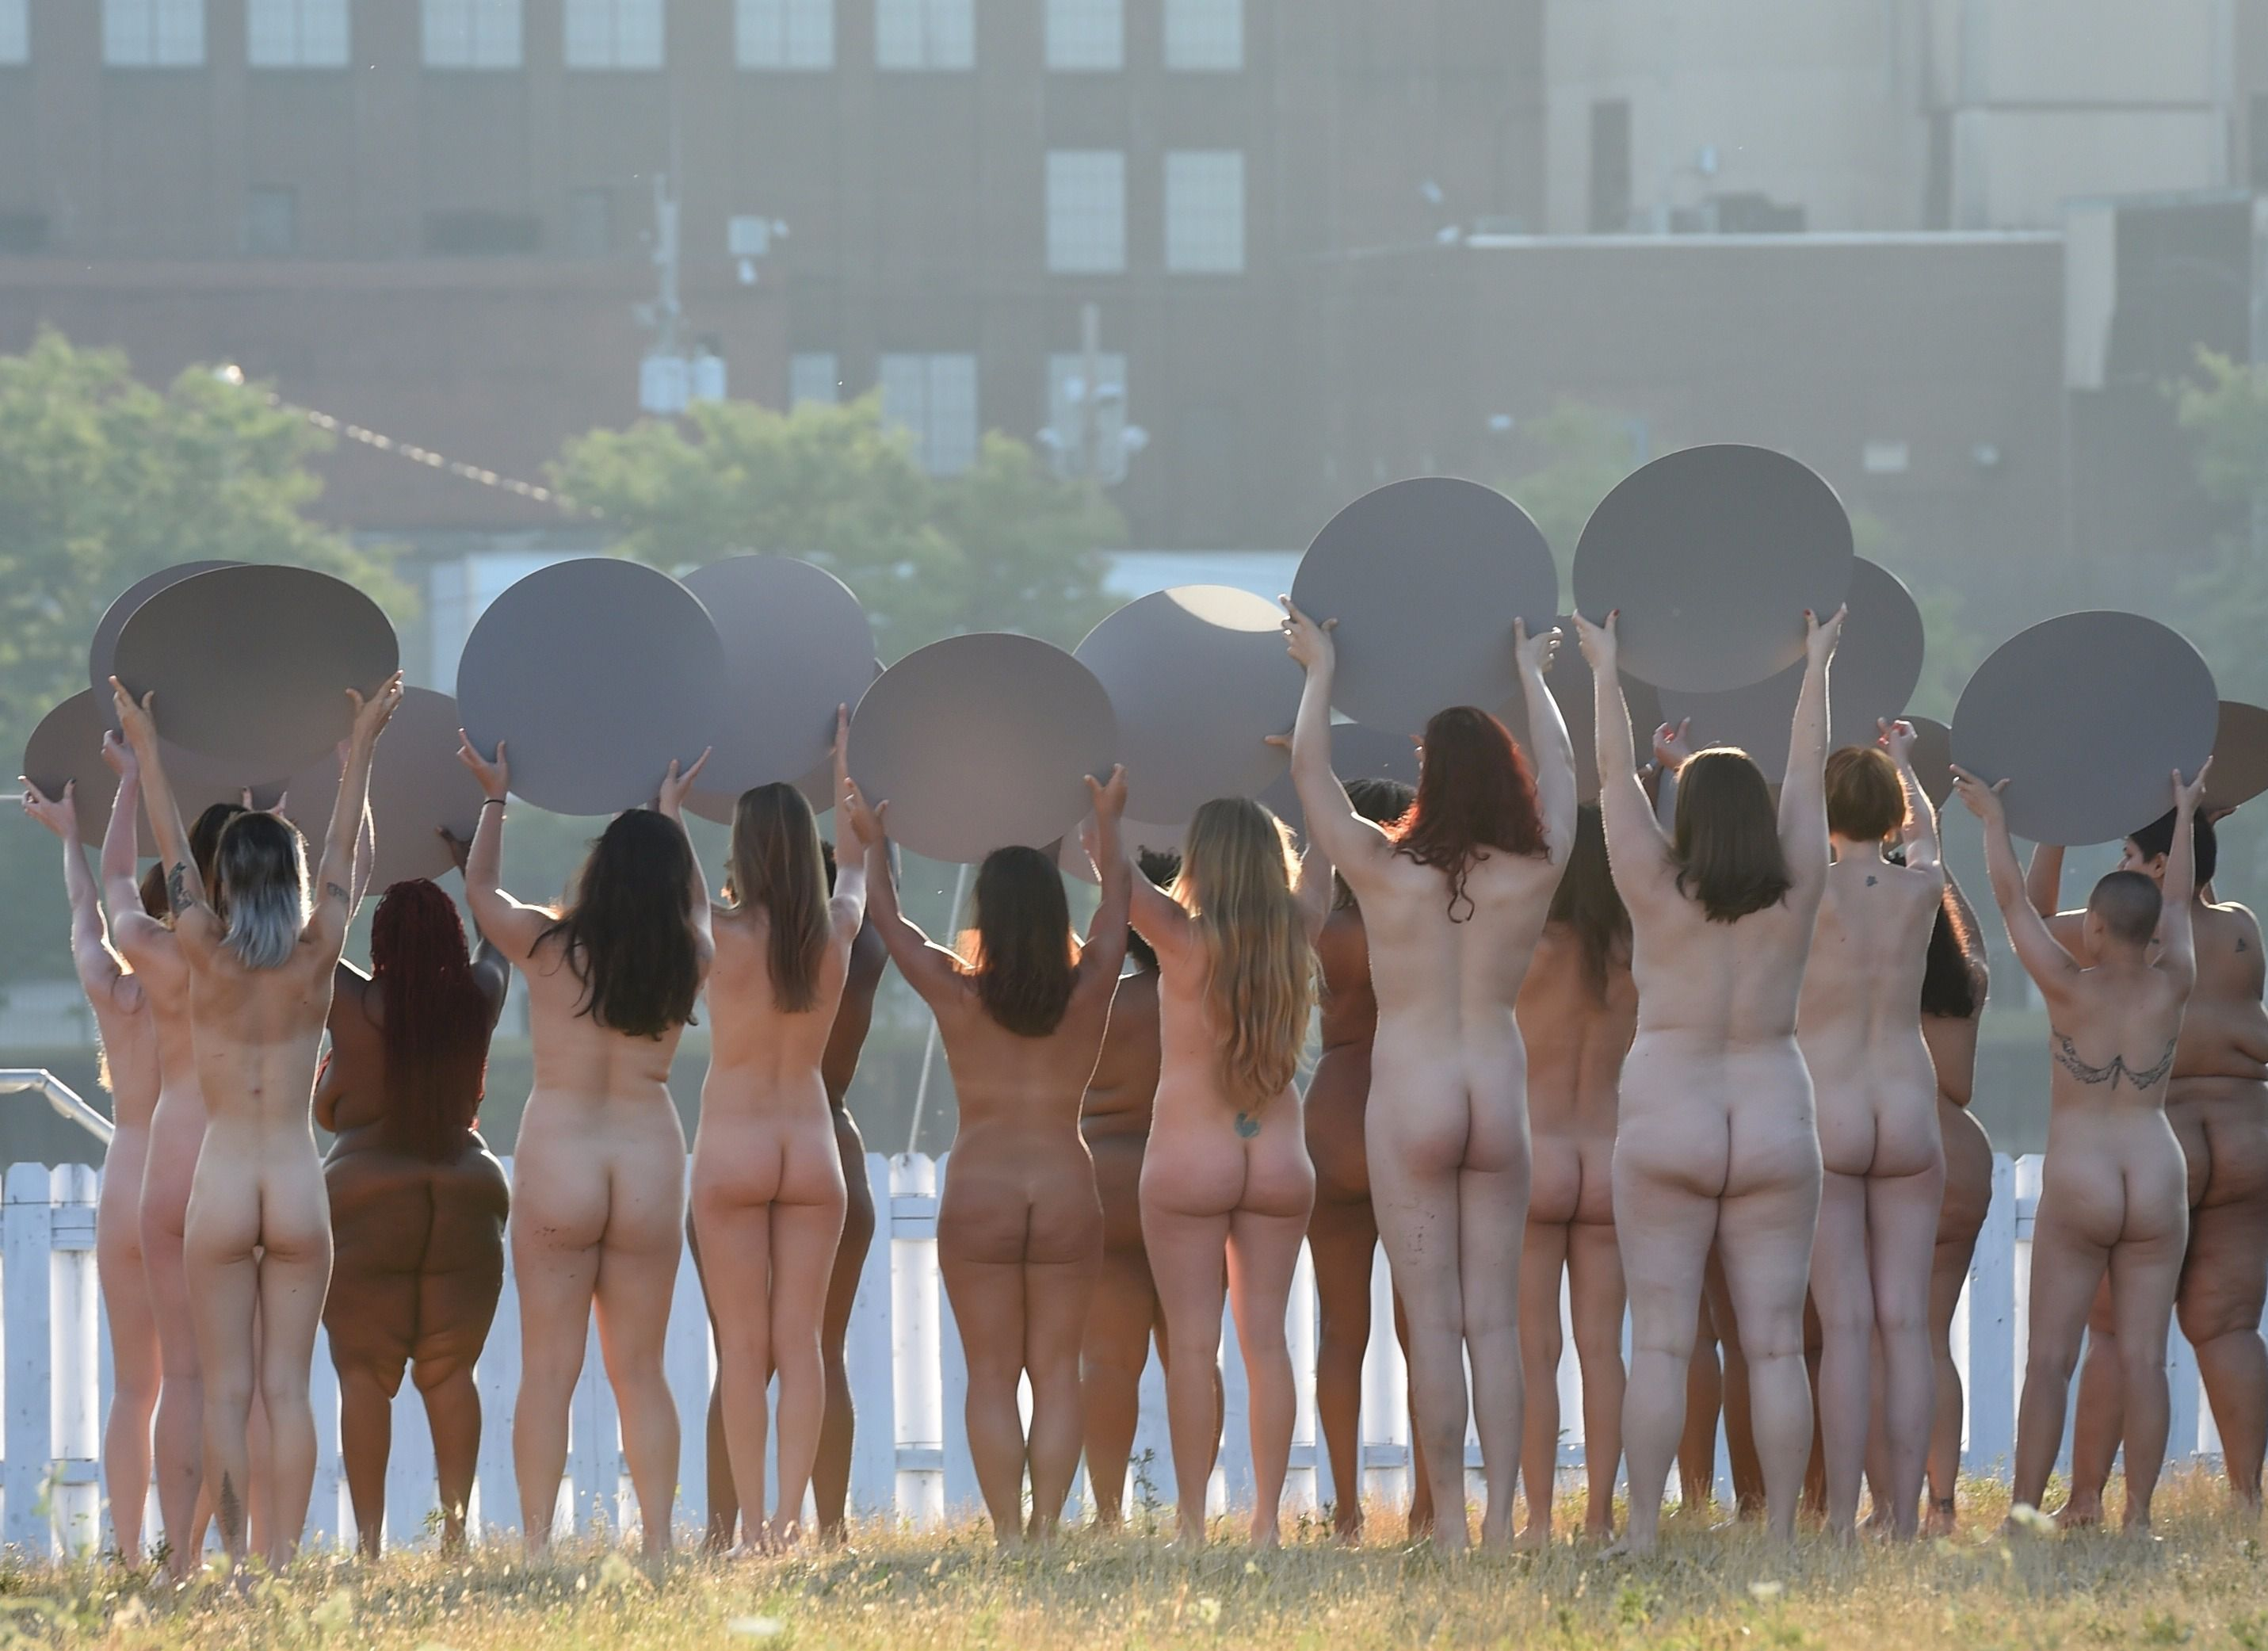 One hundred women posed nude in advance of the Republican National Convention on Sunday.